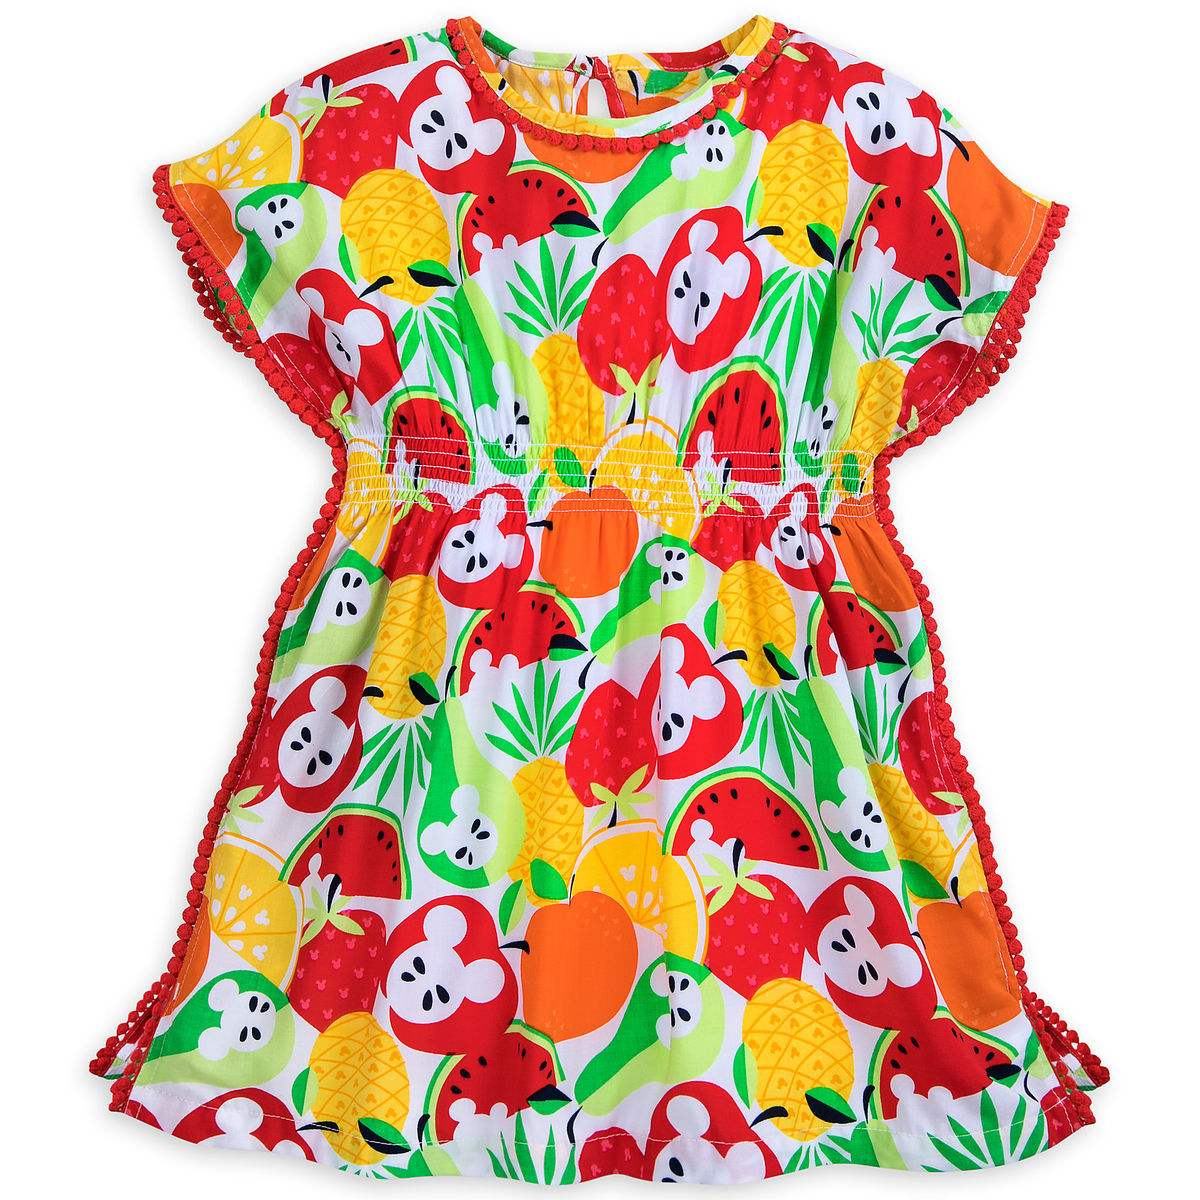 Product Image Of Mickey Mouse Fruit Dress For S Summer Fun 1